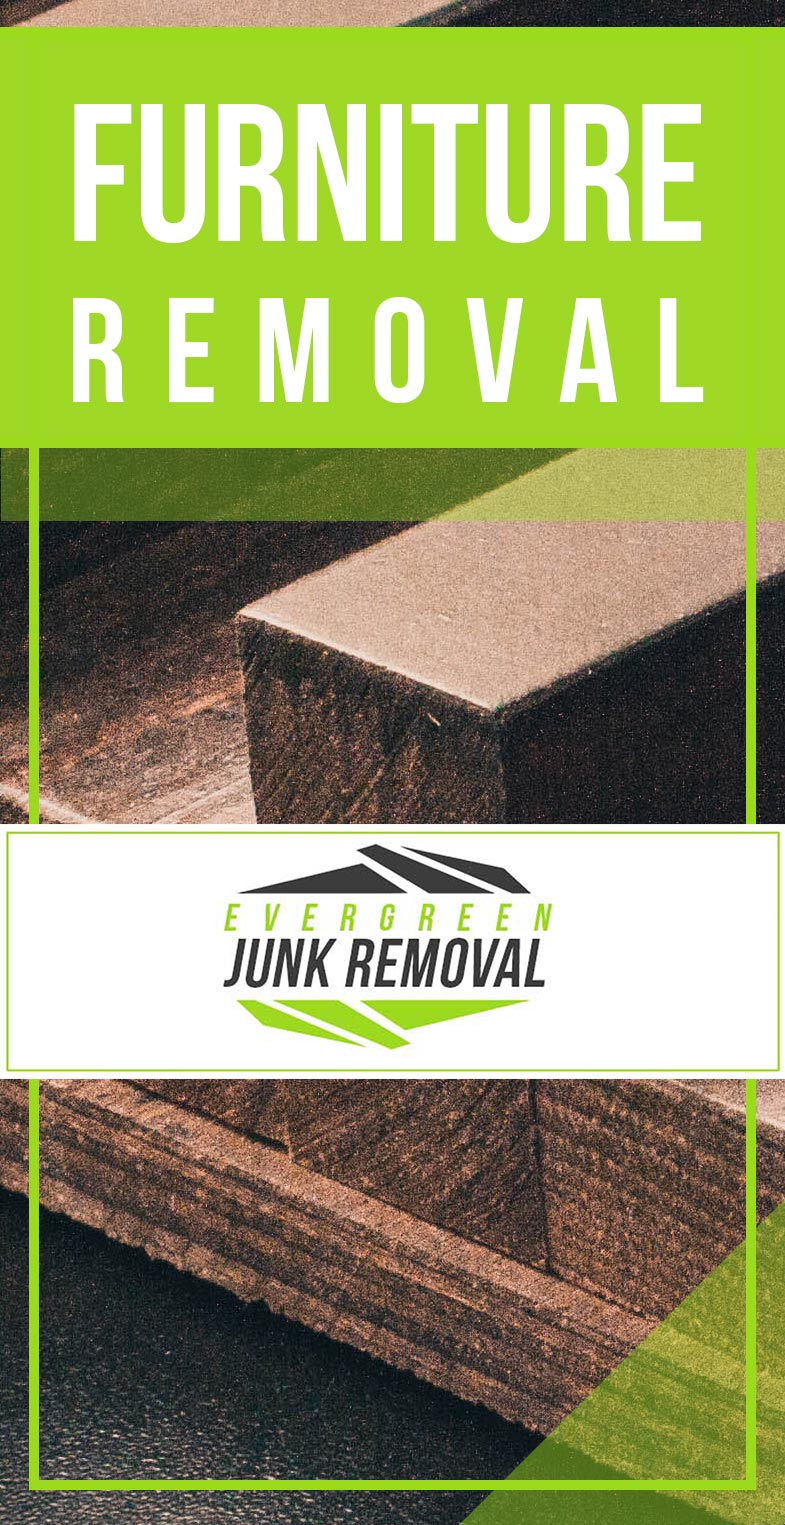 Junk Removal Atlantis Furniture Removal